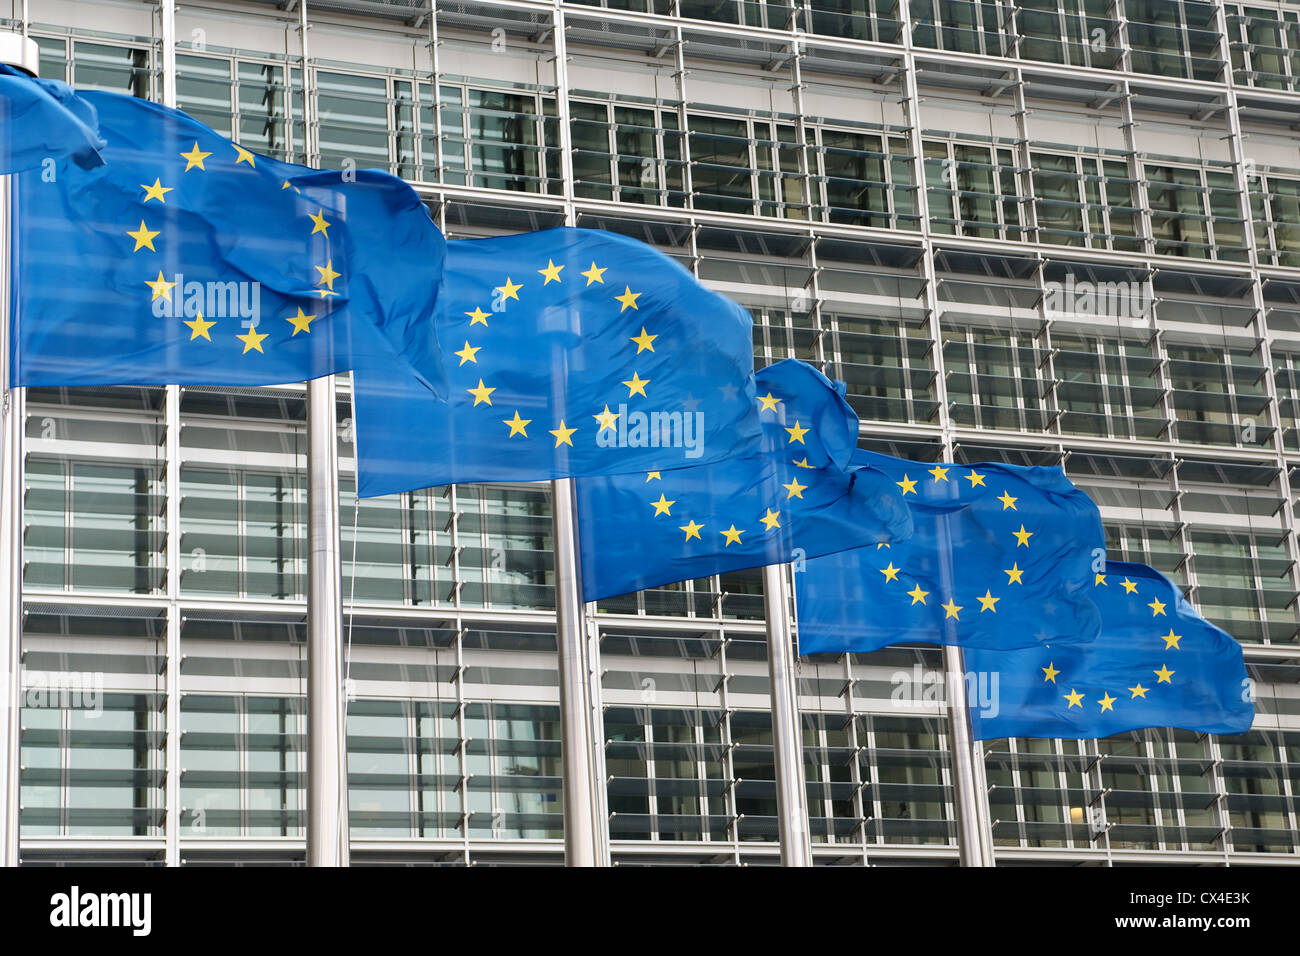 European Union flags outside European Commission building at Berlaymont in Brussels, Belgium Stock Photo